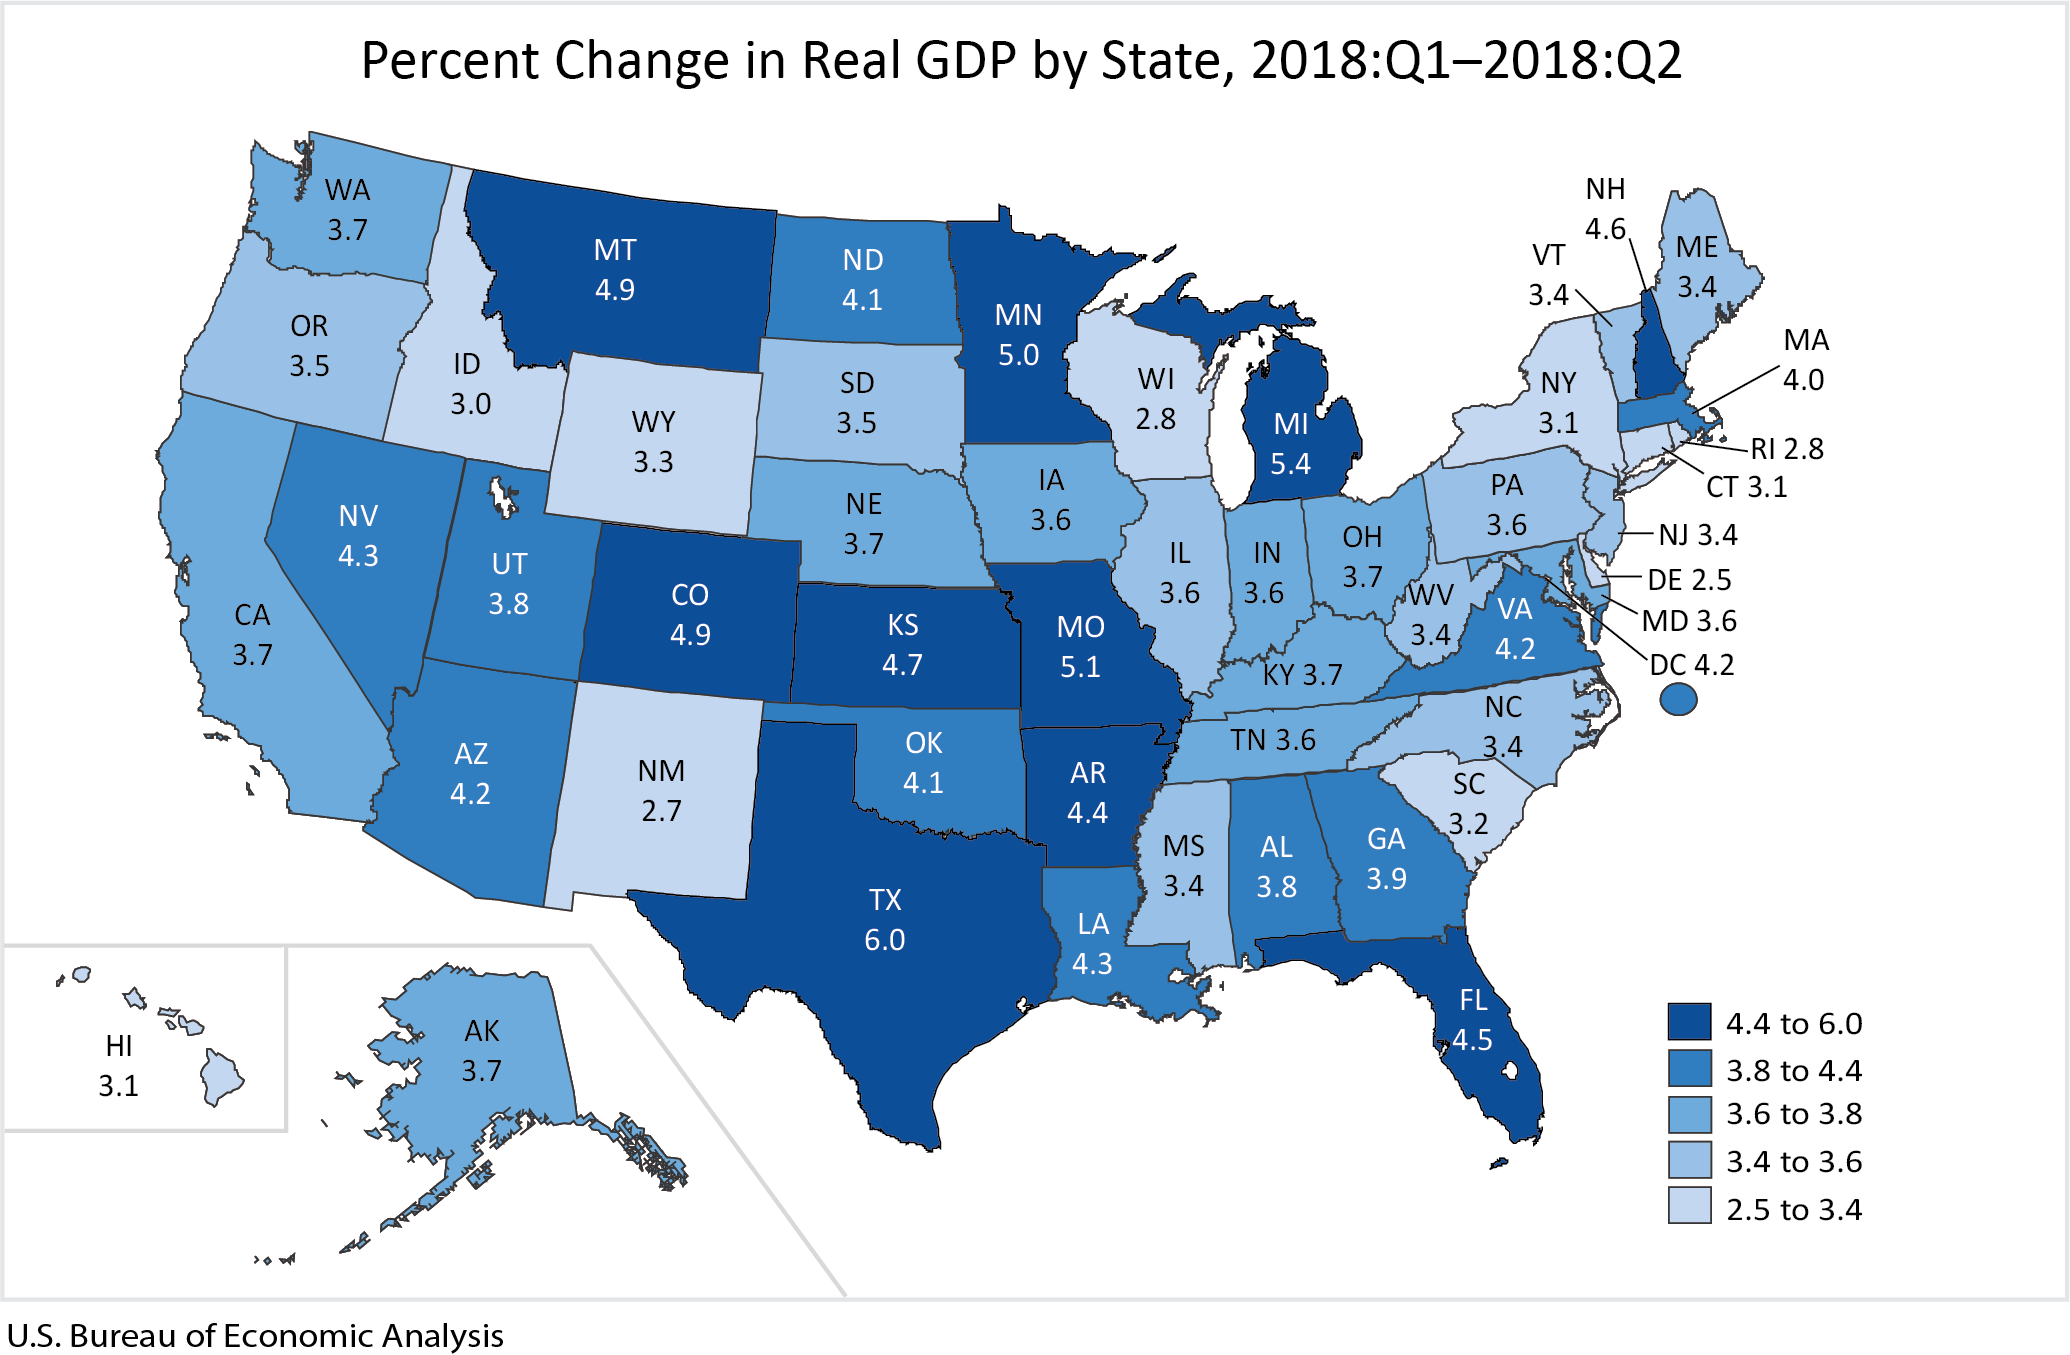 Percent change in real gdp by state, 2018:q1 - 2018:q2